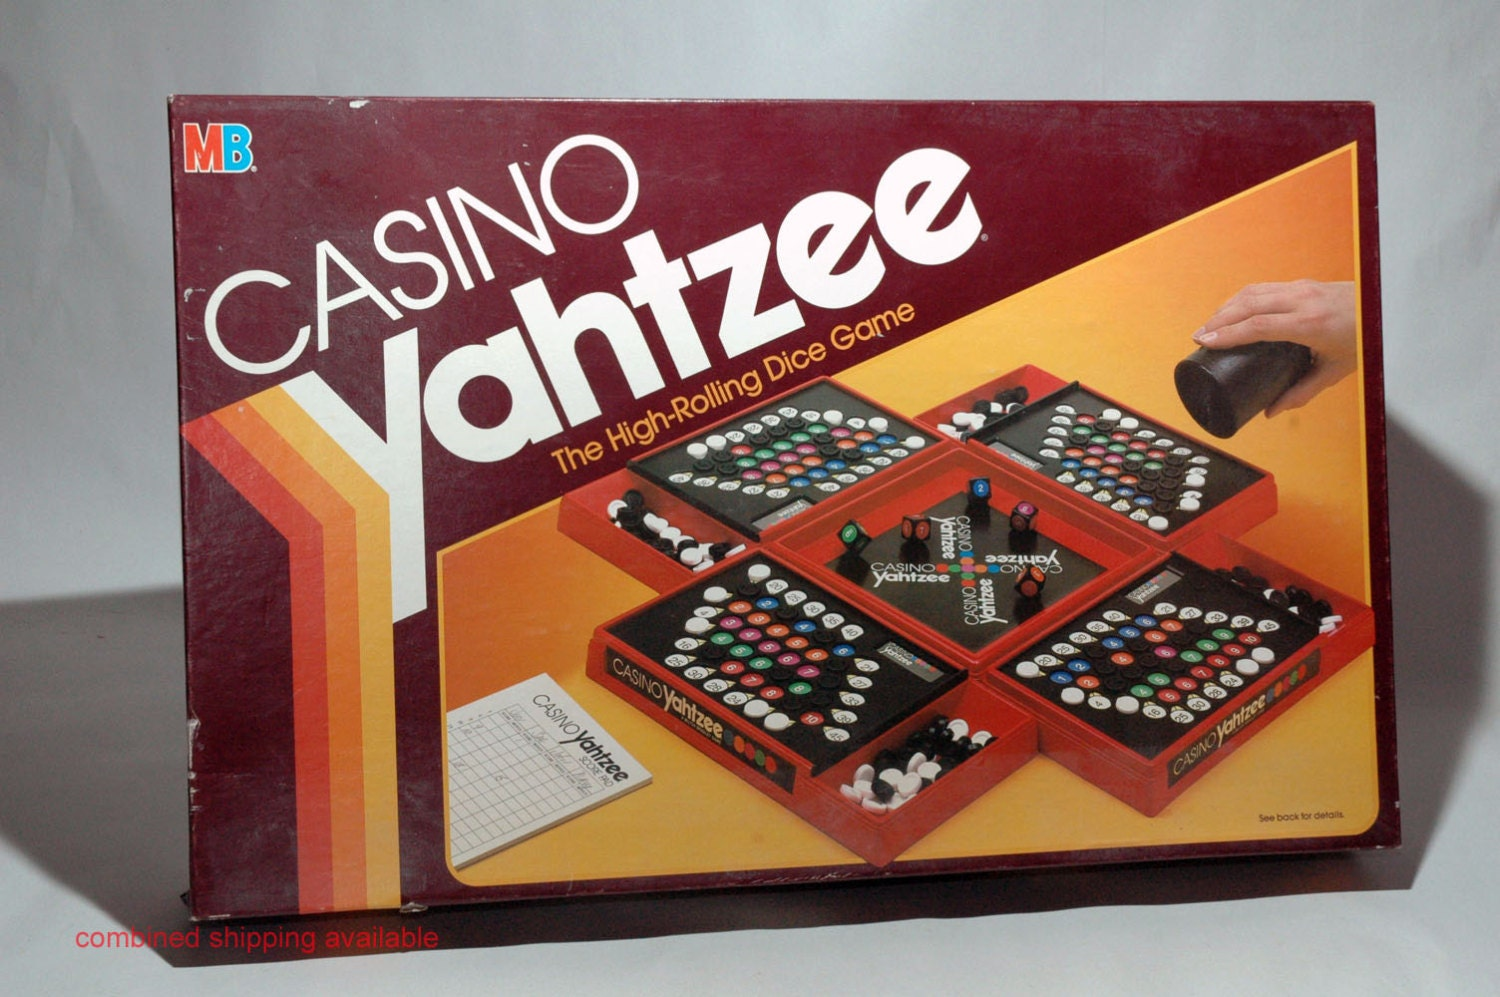 Yahtzee download free full version - With Buddies Dice Game New